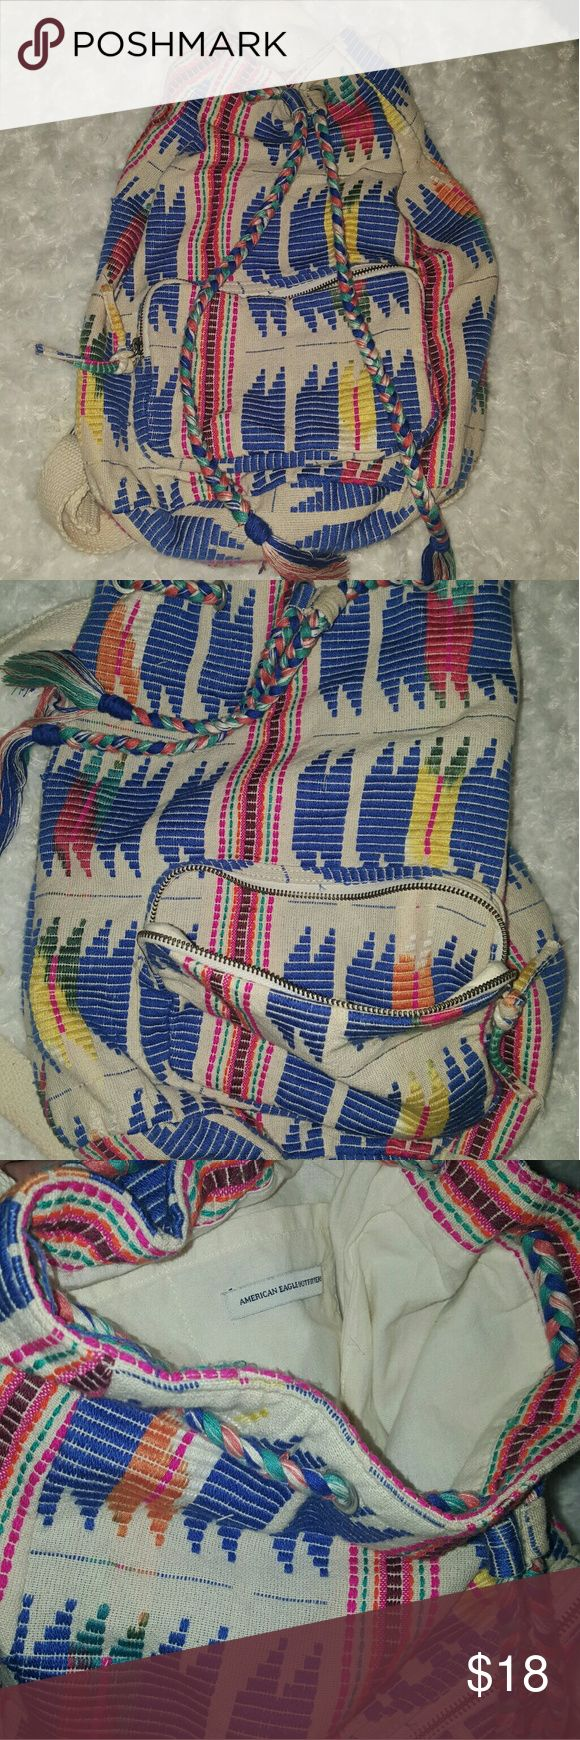 American Eagle Drawstring Backpack Bag Multicolored American Eagle drawstring backpack bag. Has one zipper pocket in the front and adjustable straps on the back. Lightweight. In good condition. American Eagle Outfitters Bags Backpacks